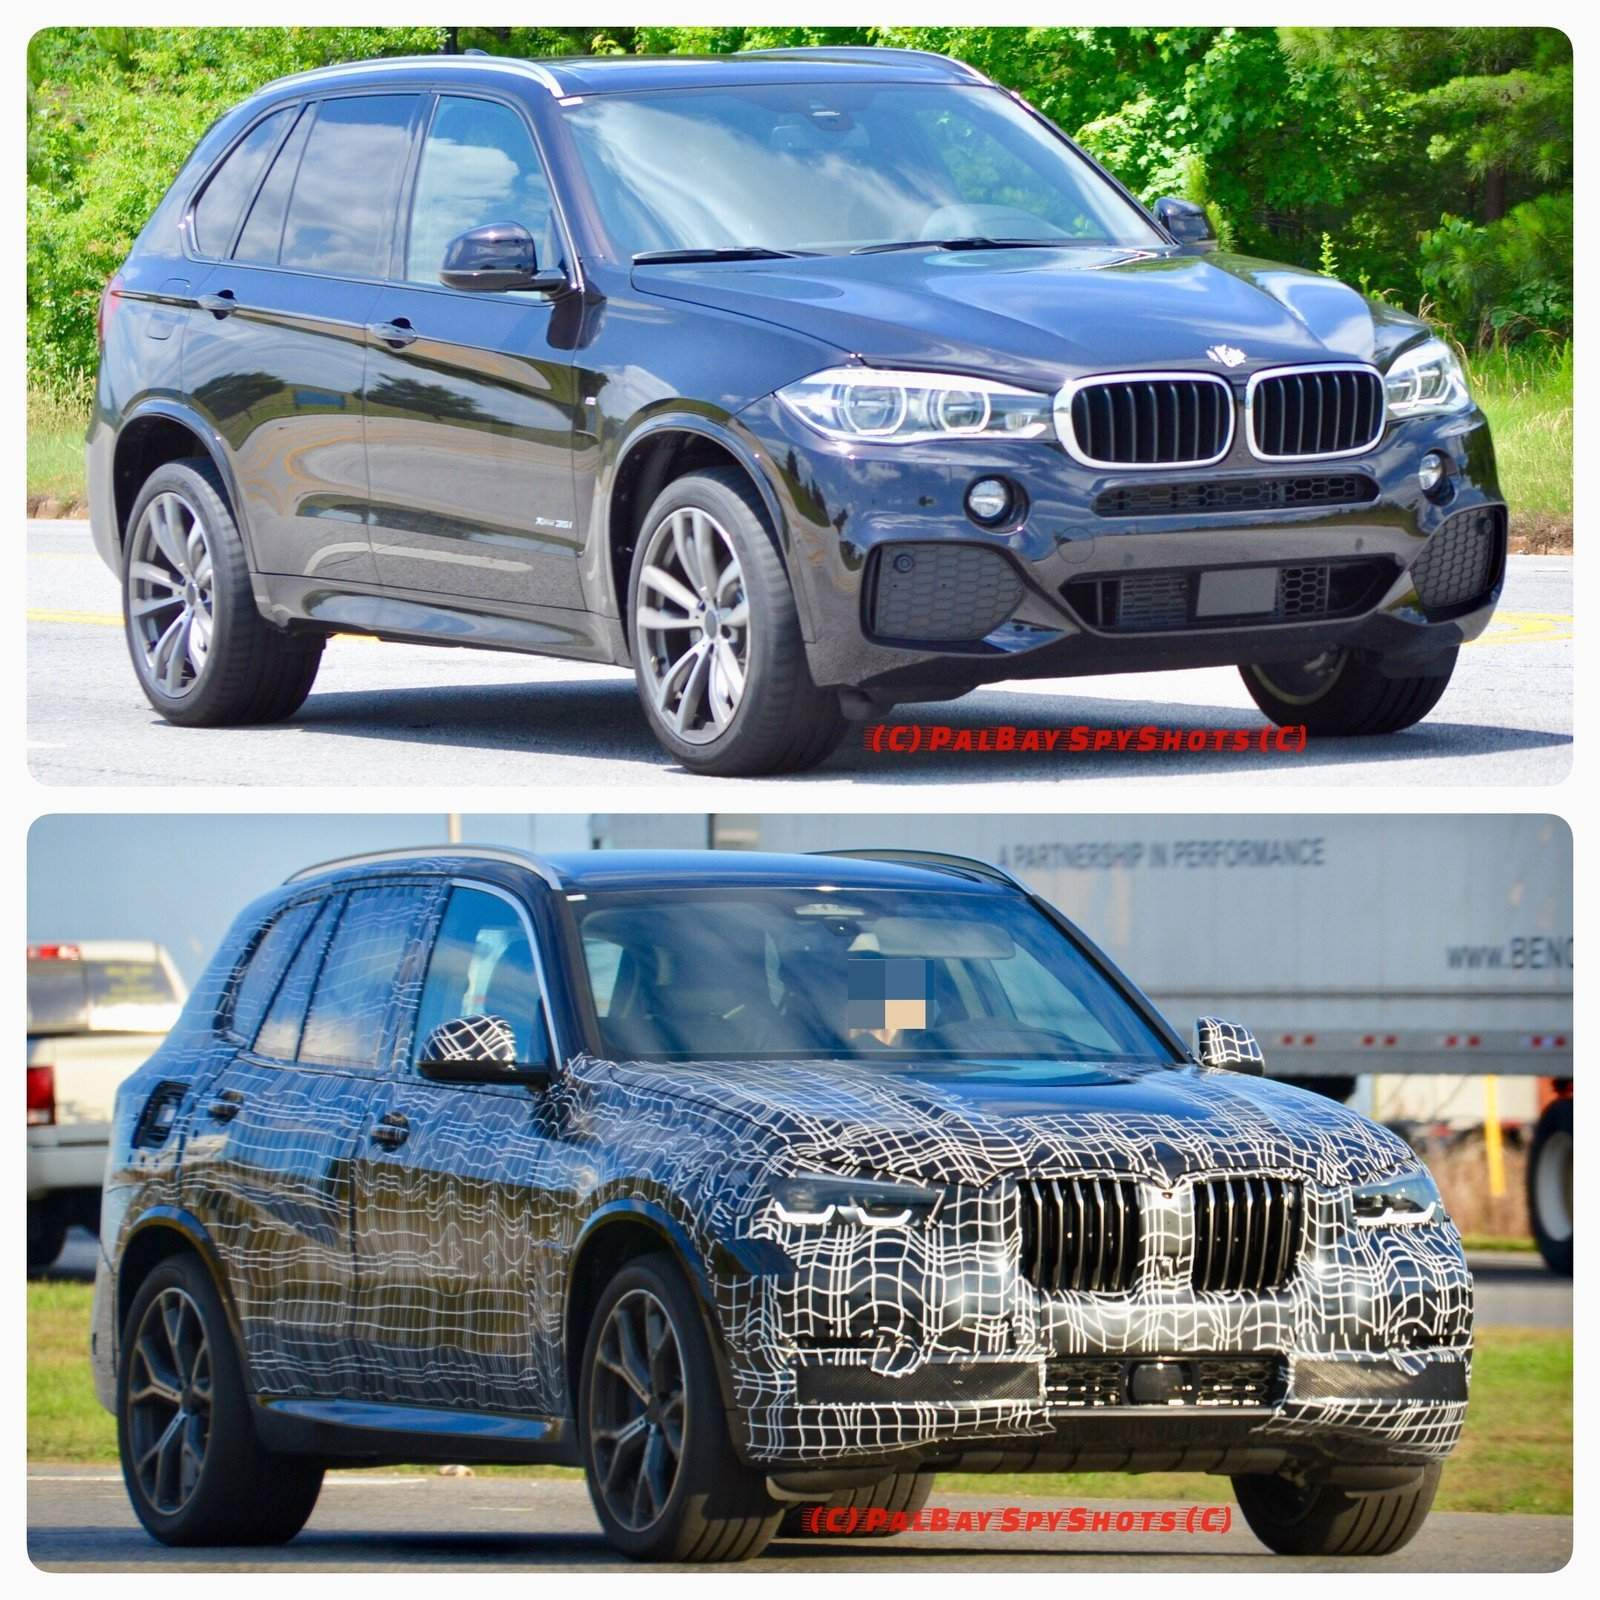 Bmw Xs5: Photo Comparison: Spied G05 BMW X5 Vs F15 BMW X5